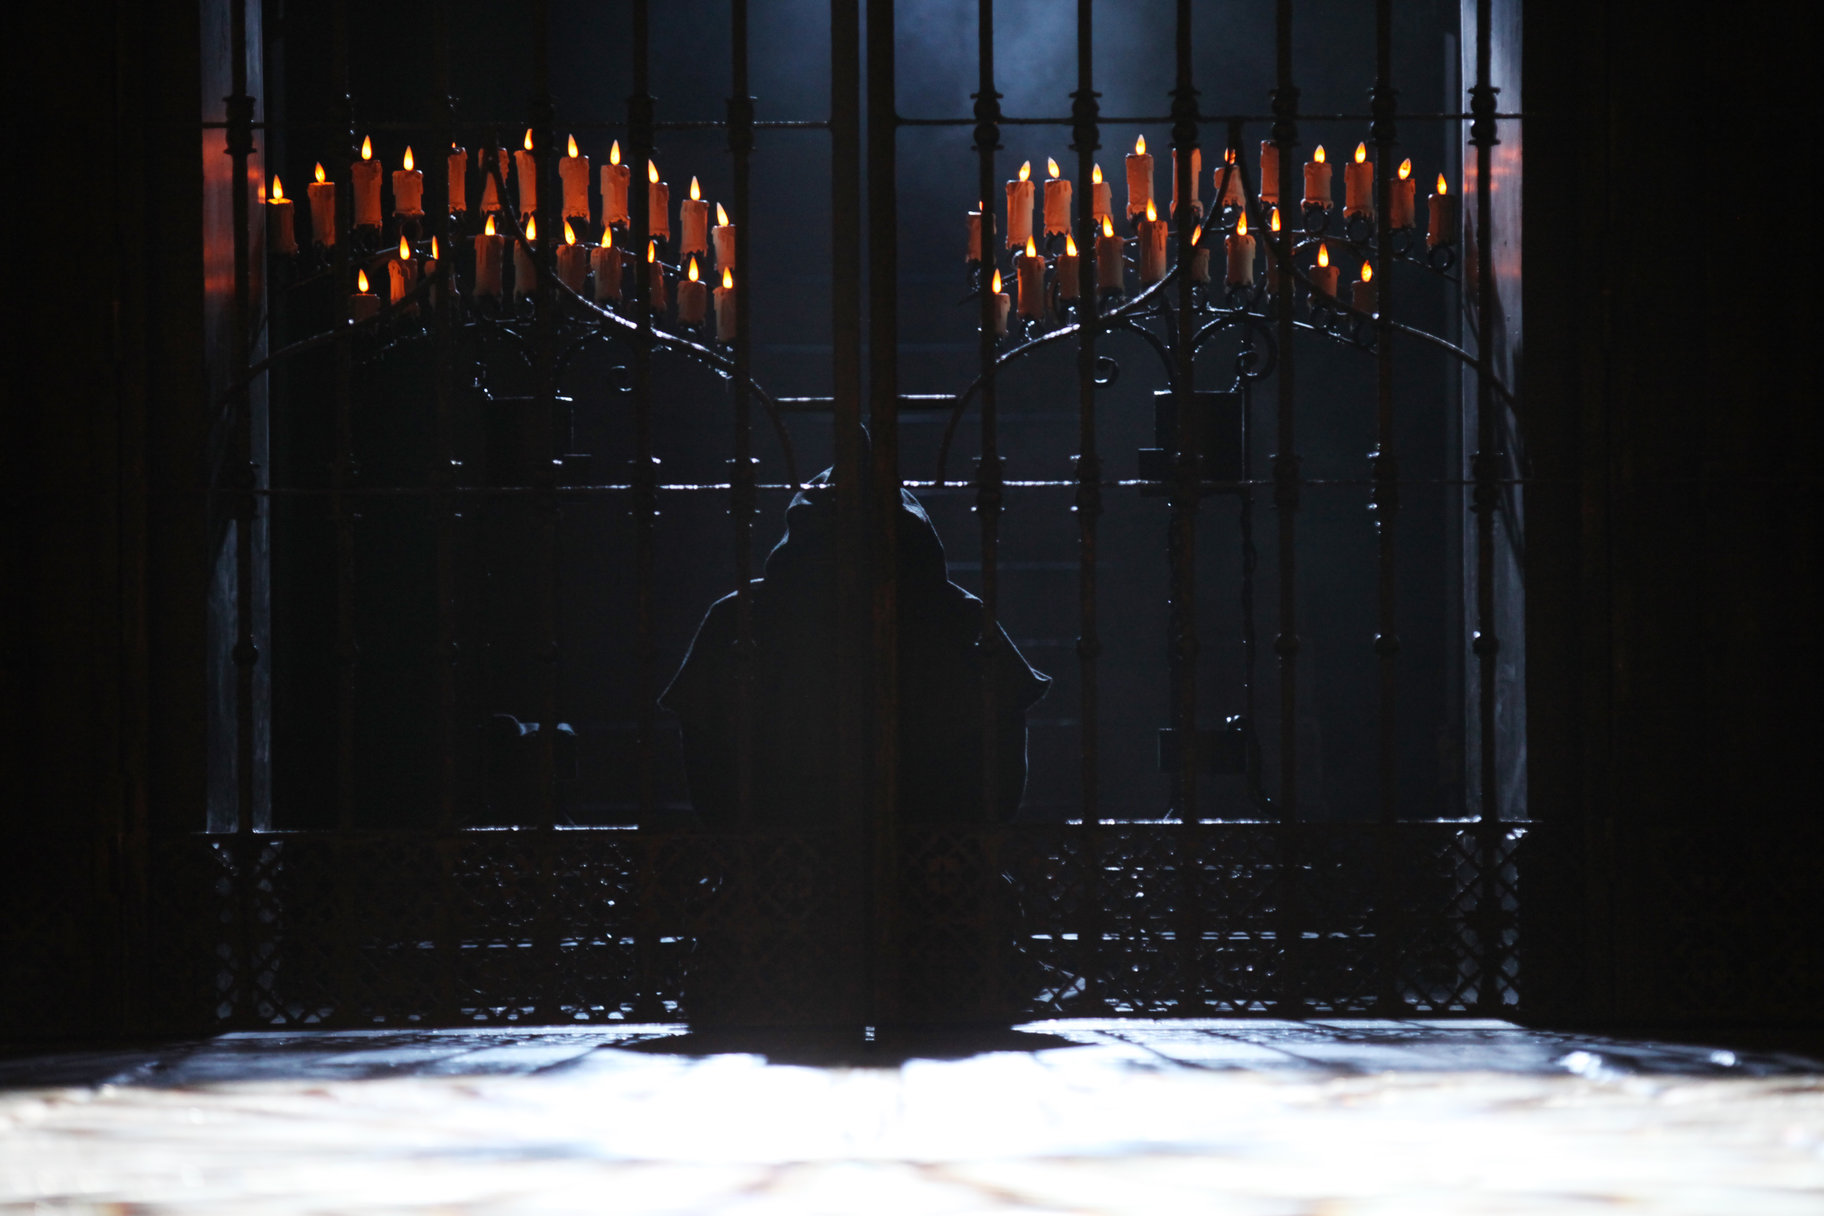 A dark figure stands behind an iron gate lit with two rows of red candles.